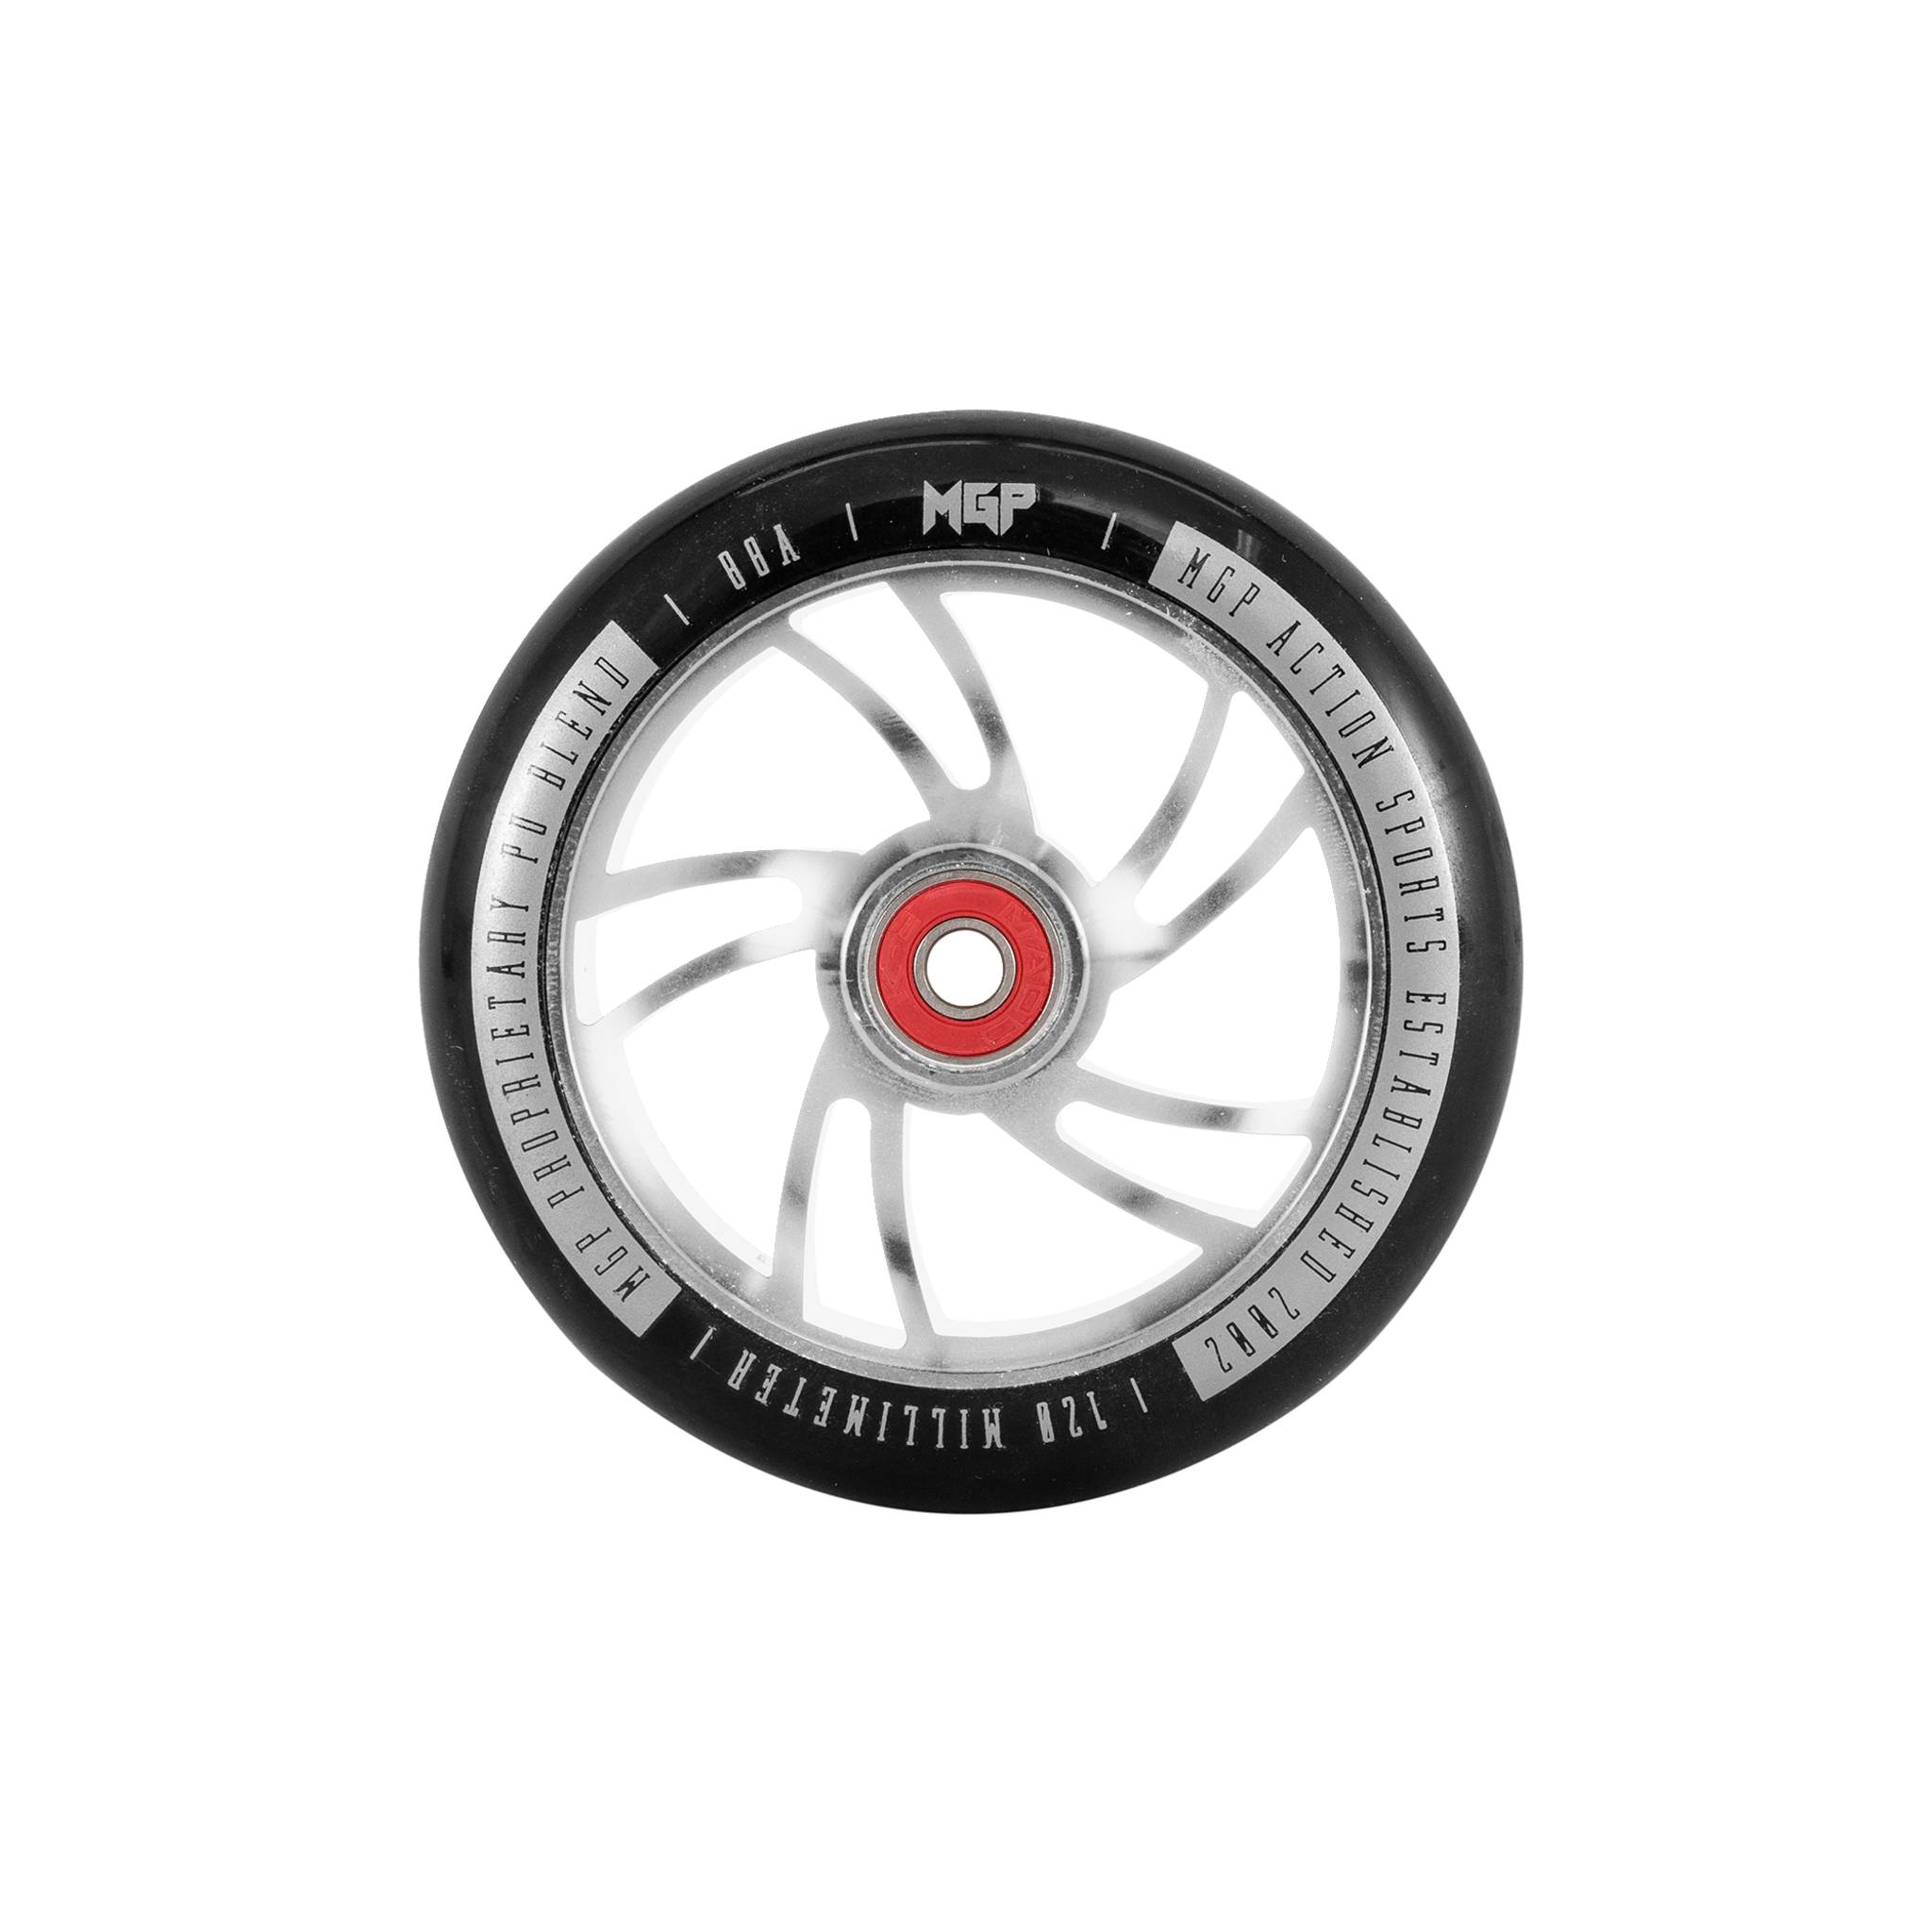 MGP Action Sports Shredder CNC wheels 120 mm, sparkesykkelhjulsett med hjullagre